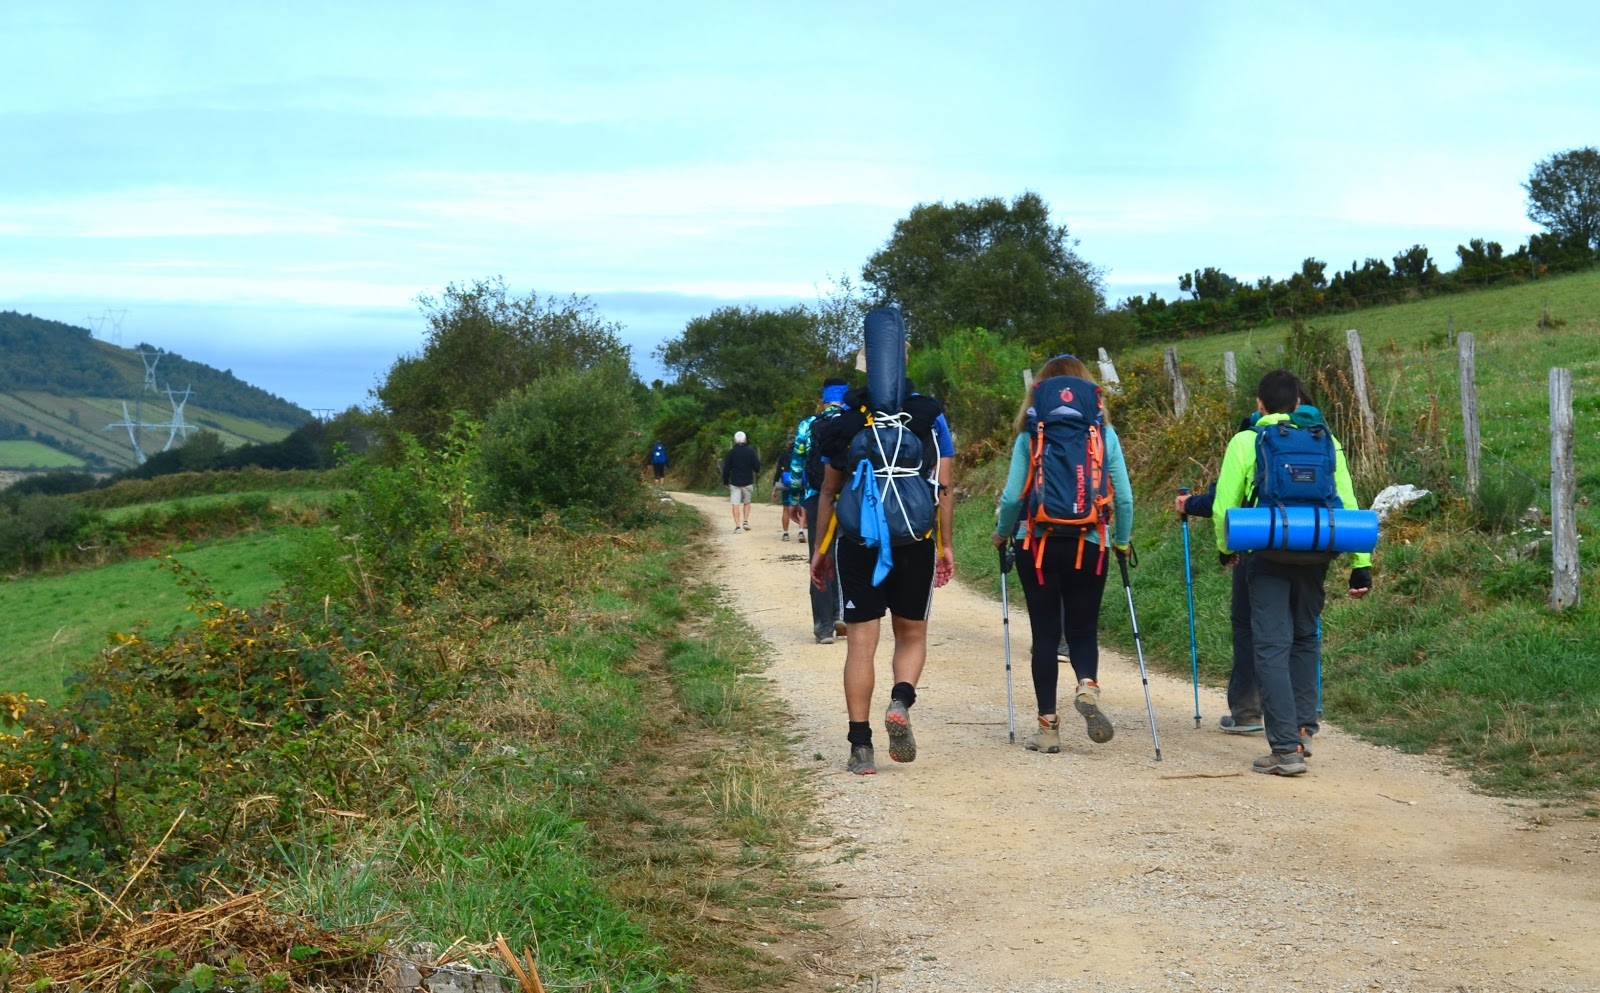 Getting caught up in the Camino experience was what I looked forward to with each day's dawn.